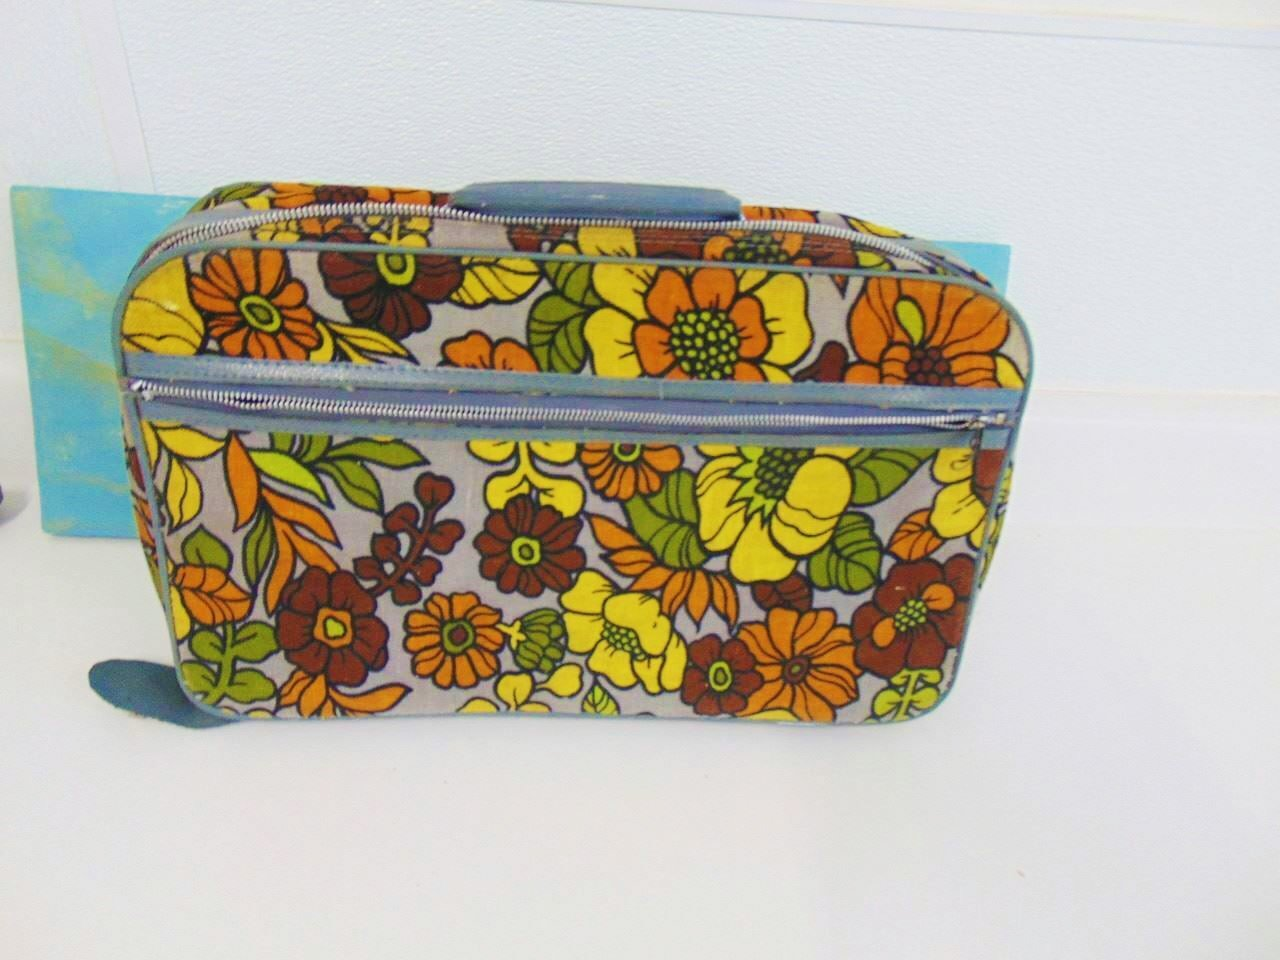 Vintage 1960's Mod Floral Luggage 2 Piece Set